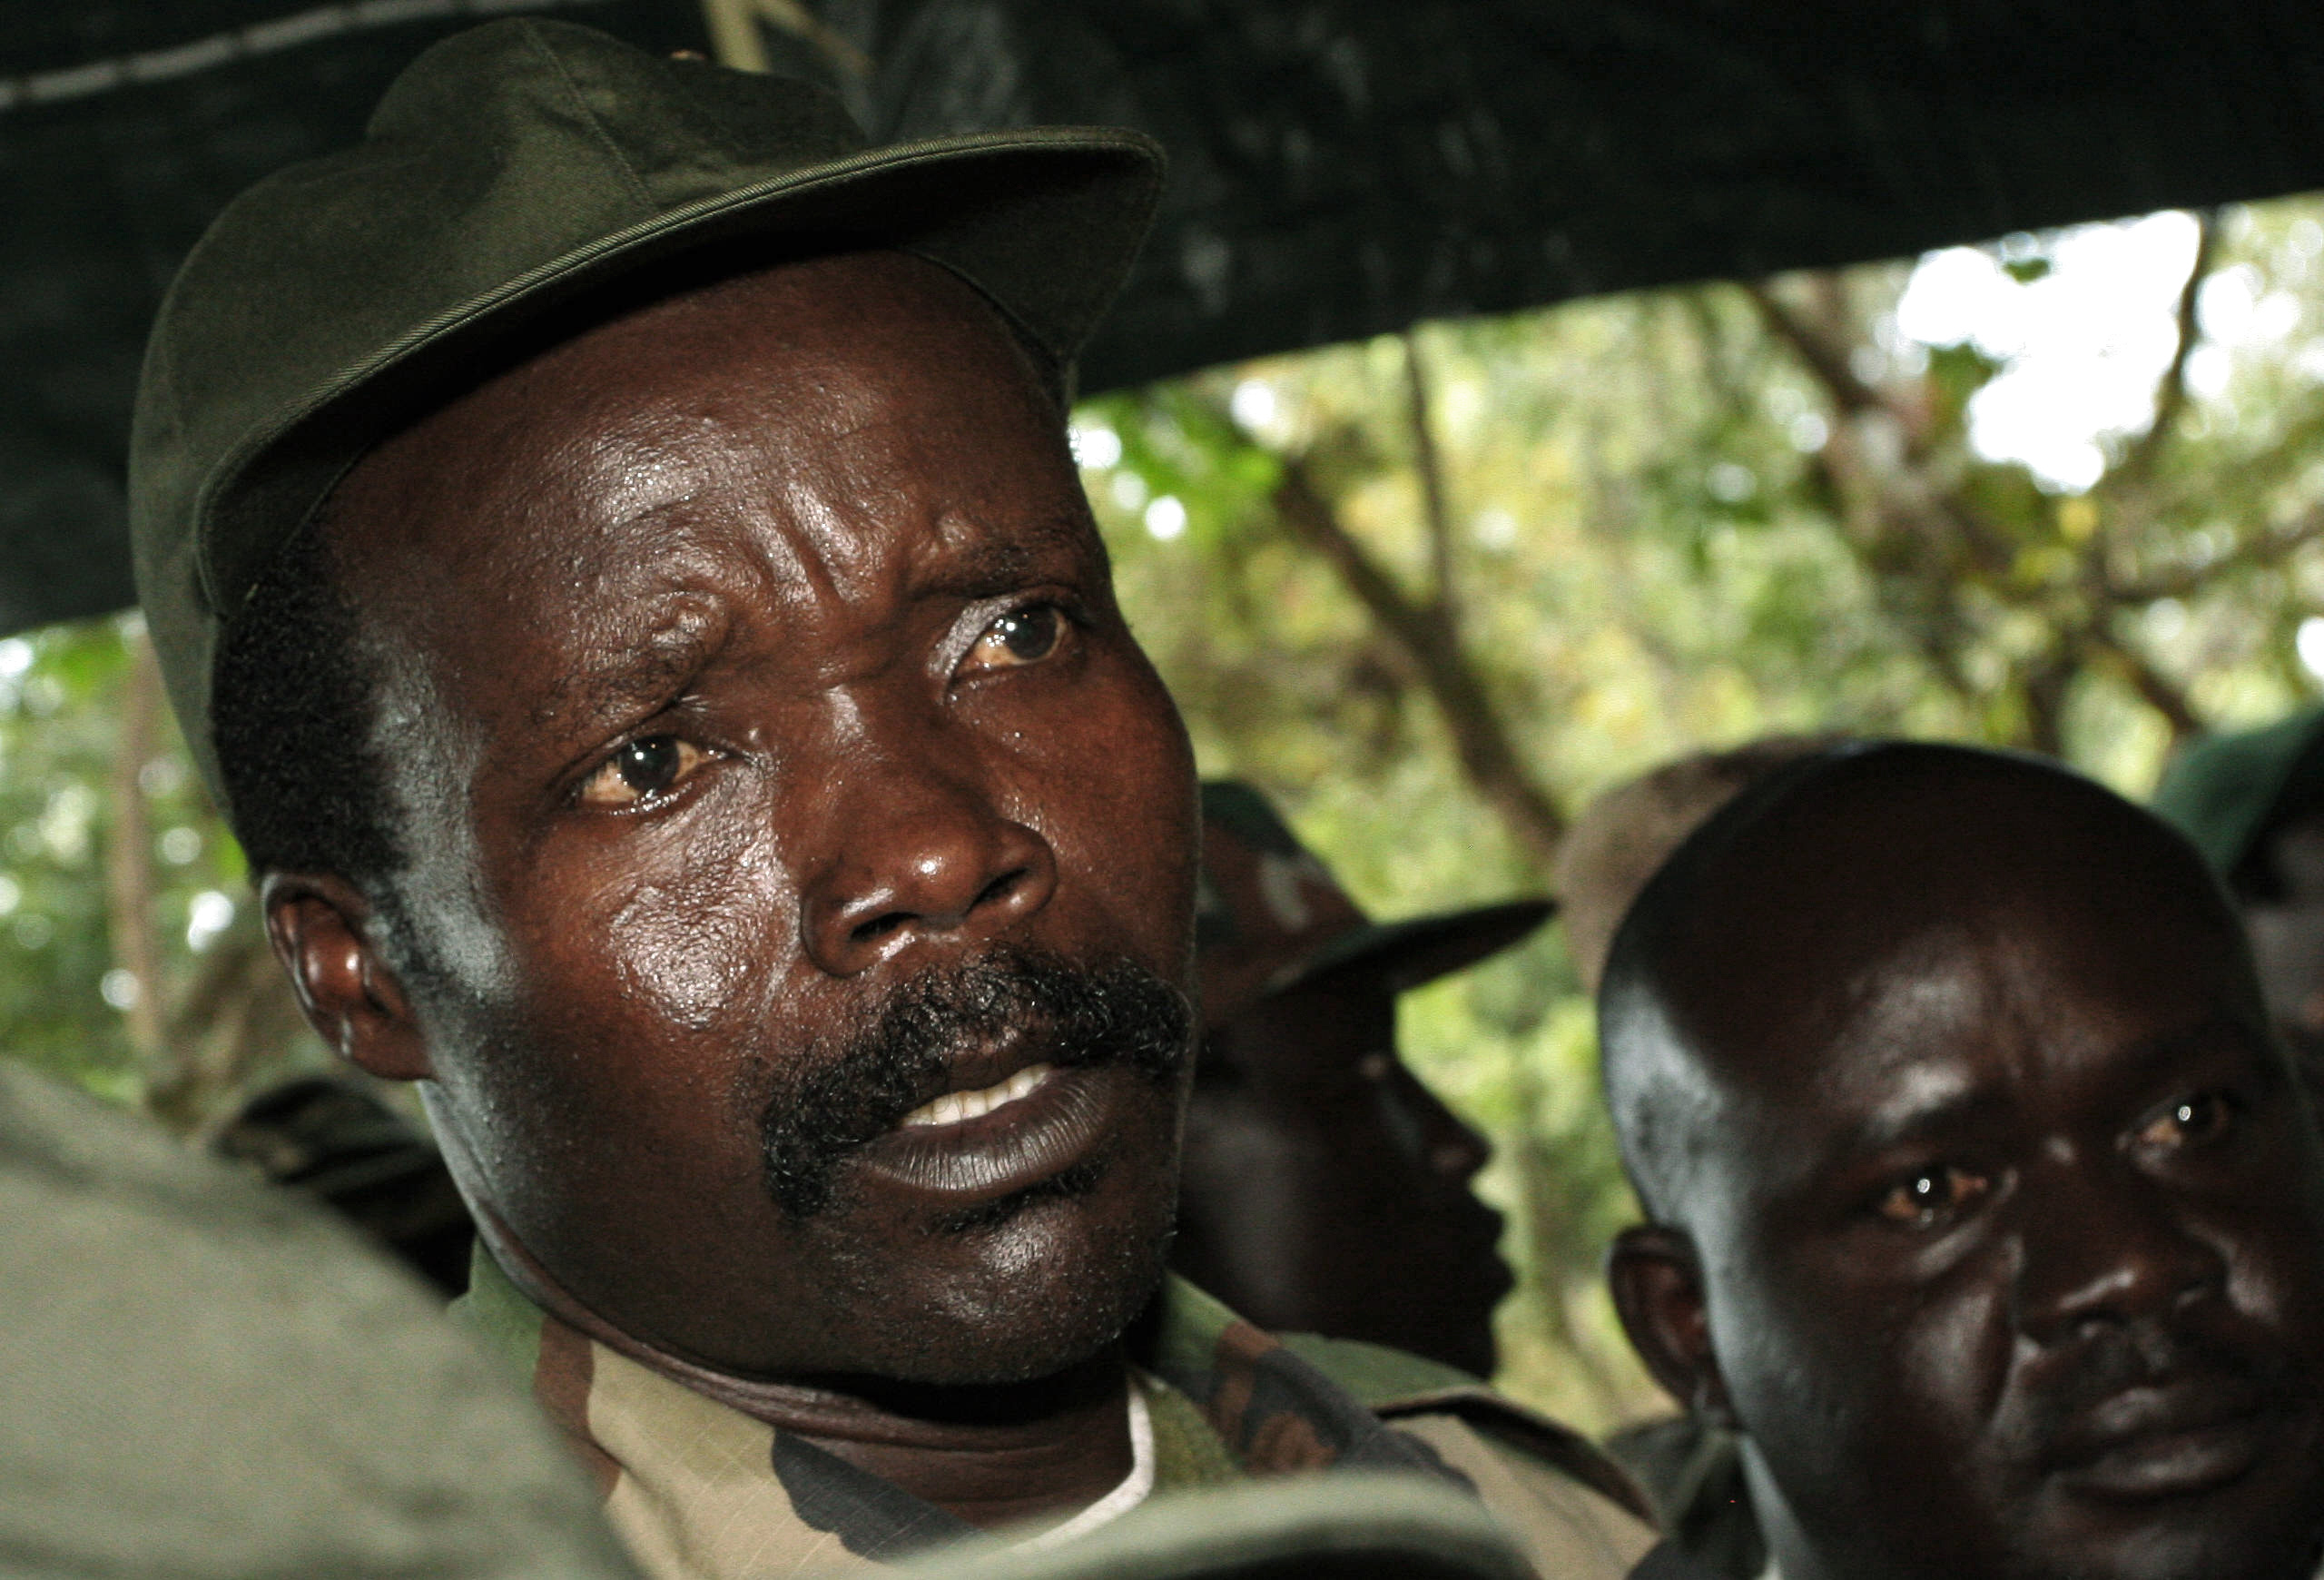 Leader of the Lord's Resistance Army Joseph Kony speaks to journalists after a meeting with U.N. humanitarian chief Jan Egeland at Ri-Kwamba in southern Sudan November 12, 2006. Egeland held a brief and heated jungle meeting with the elusive head of Uganda's Lord's Resistance Army on Sunday but failed to win immediately two of the concessions he was seeking. REUTERS/Stuart Price/Pool (SUDAN) - RTR1JA2B